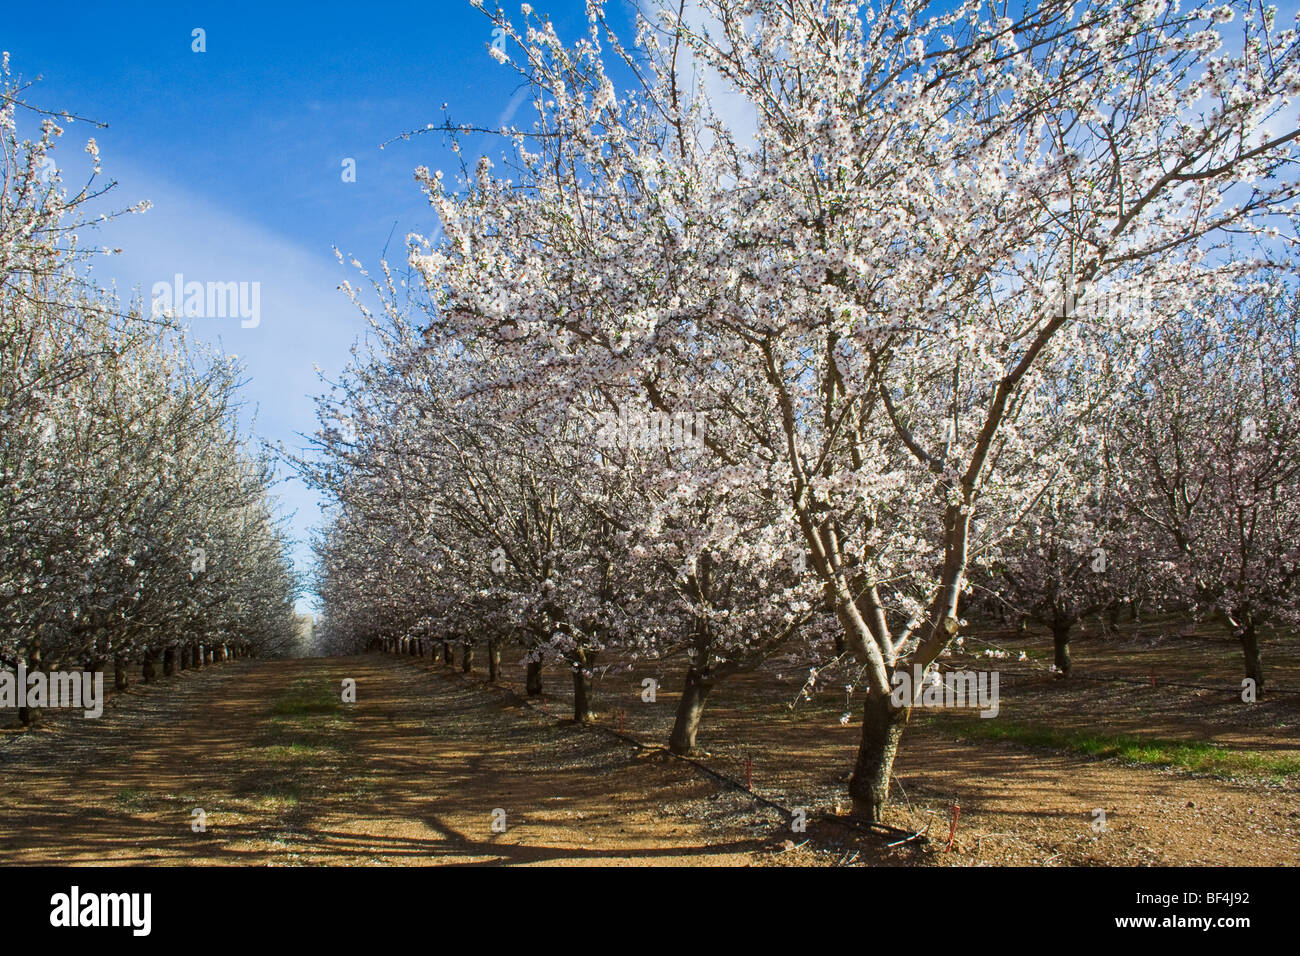 Agriculture - Almond orchard in full bloom in late Winter / Glenn County, California, USA. - Stock Image